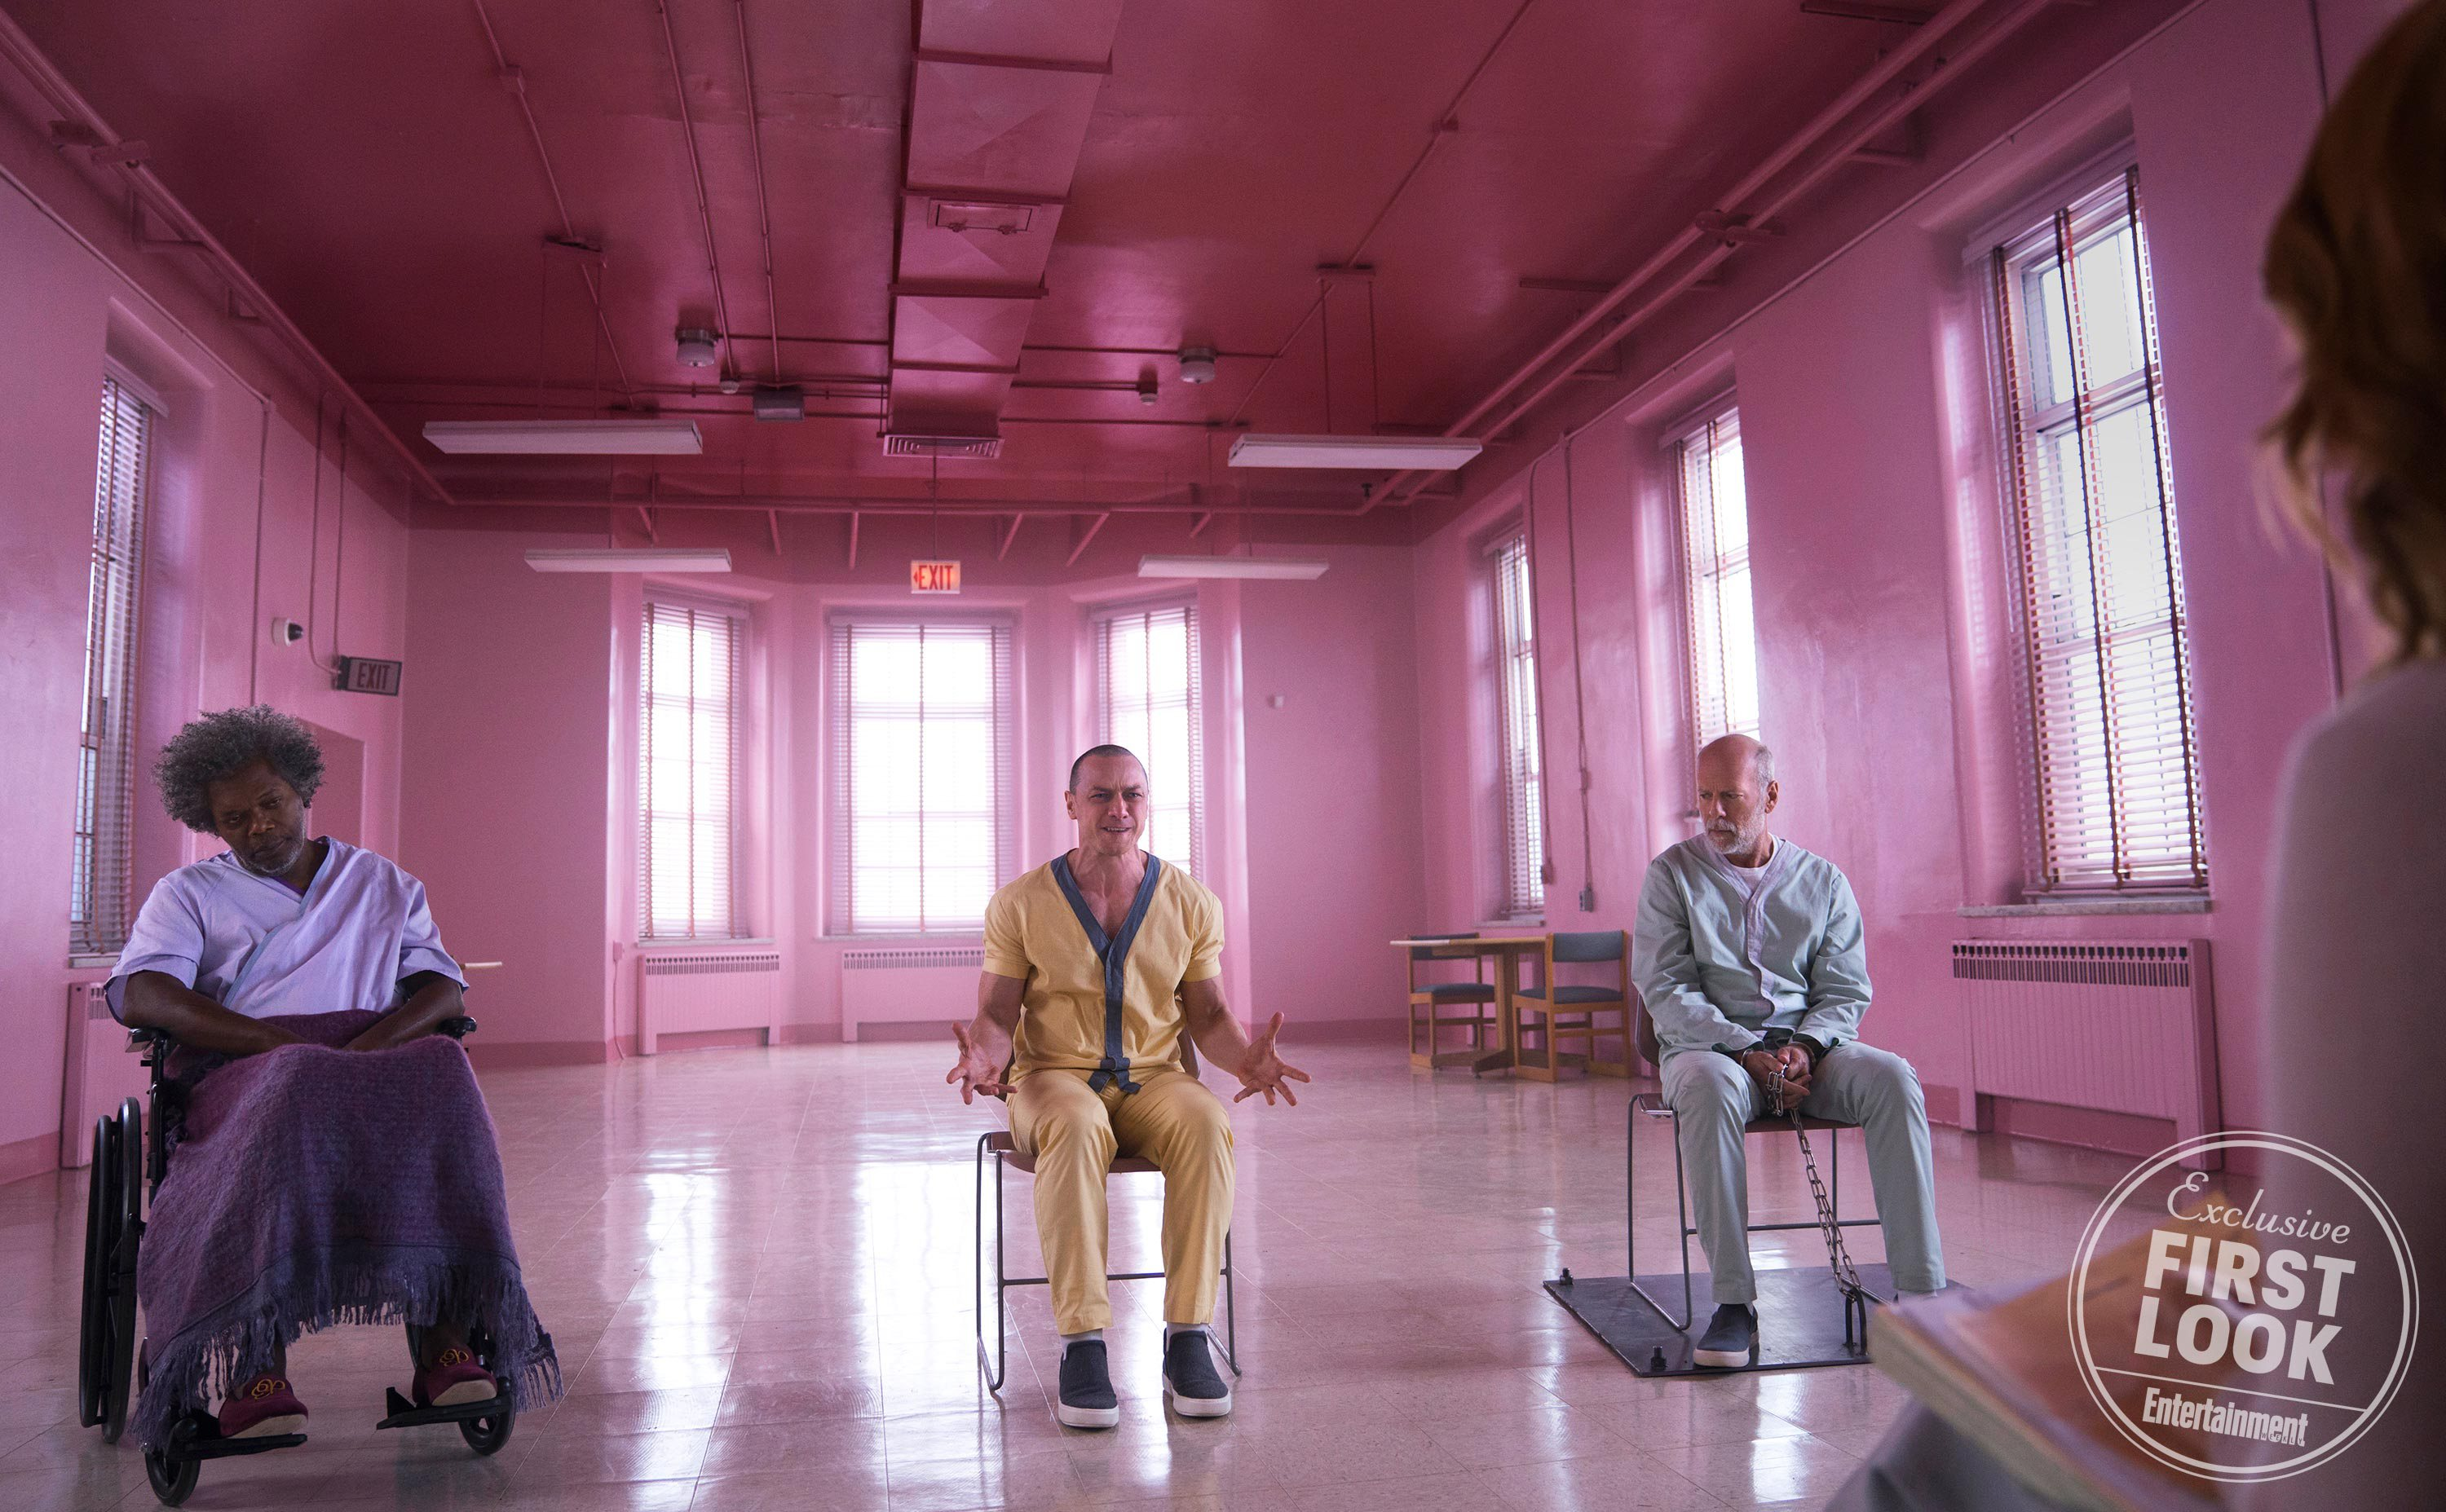 Glass Pic 3 - New GLASS Pics Featuring Willis, Jackson, Joy, and McAvoy